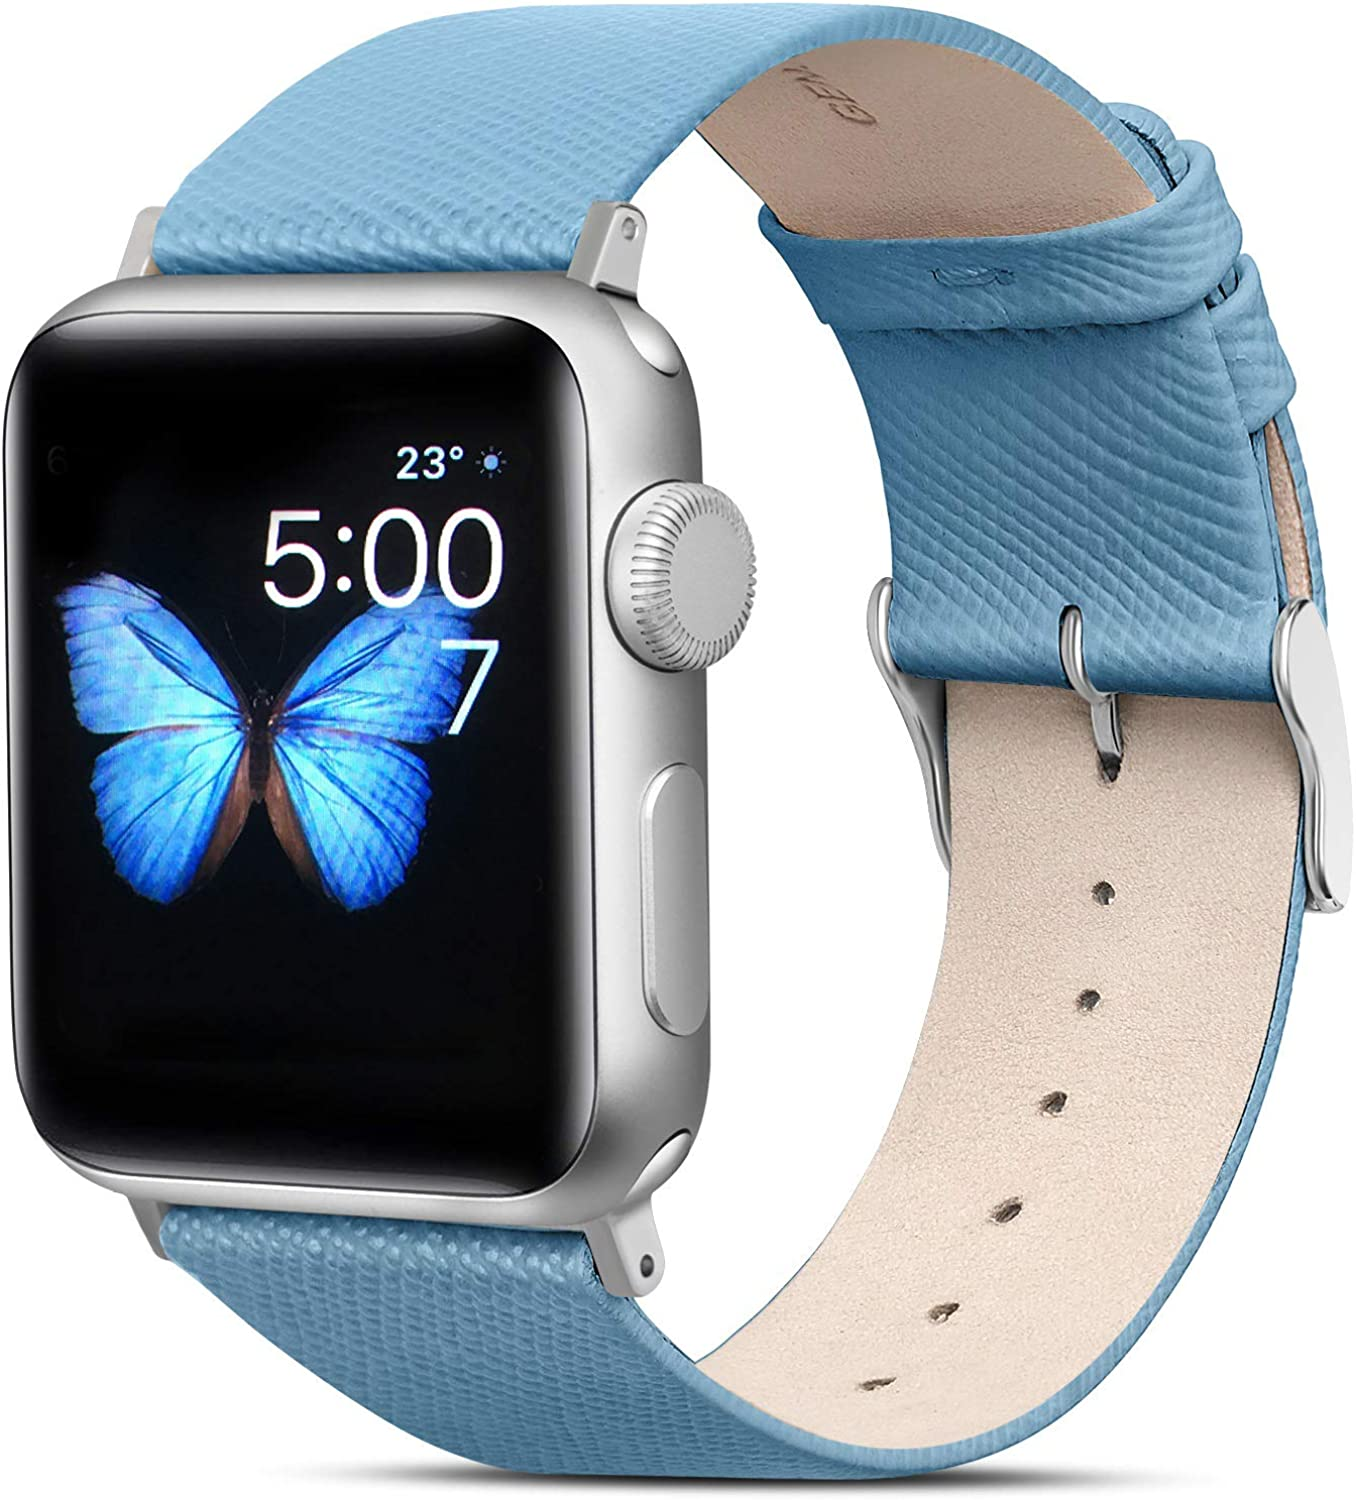 FITWORTH Aroma Series, High End Genuine Leather Band Compatible with Apple Watch 38/40, Thin & Light, Urban Fashion Style for Professional Women